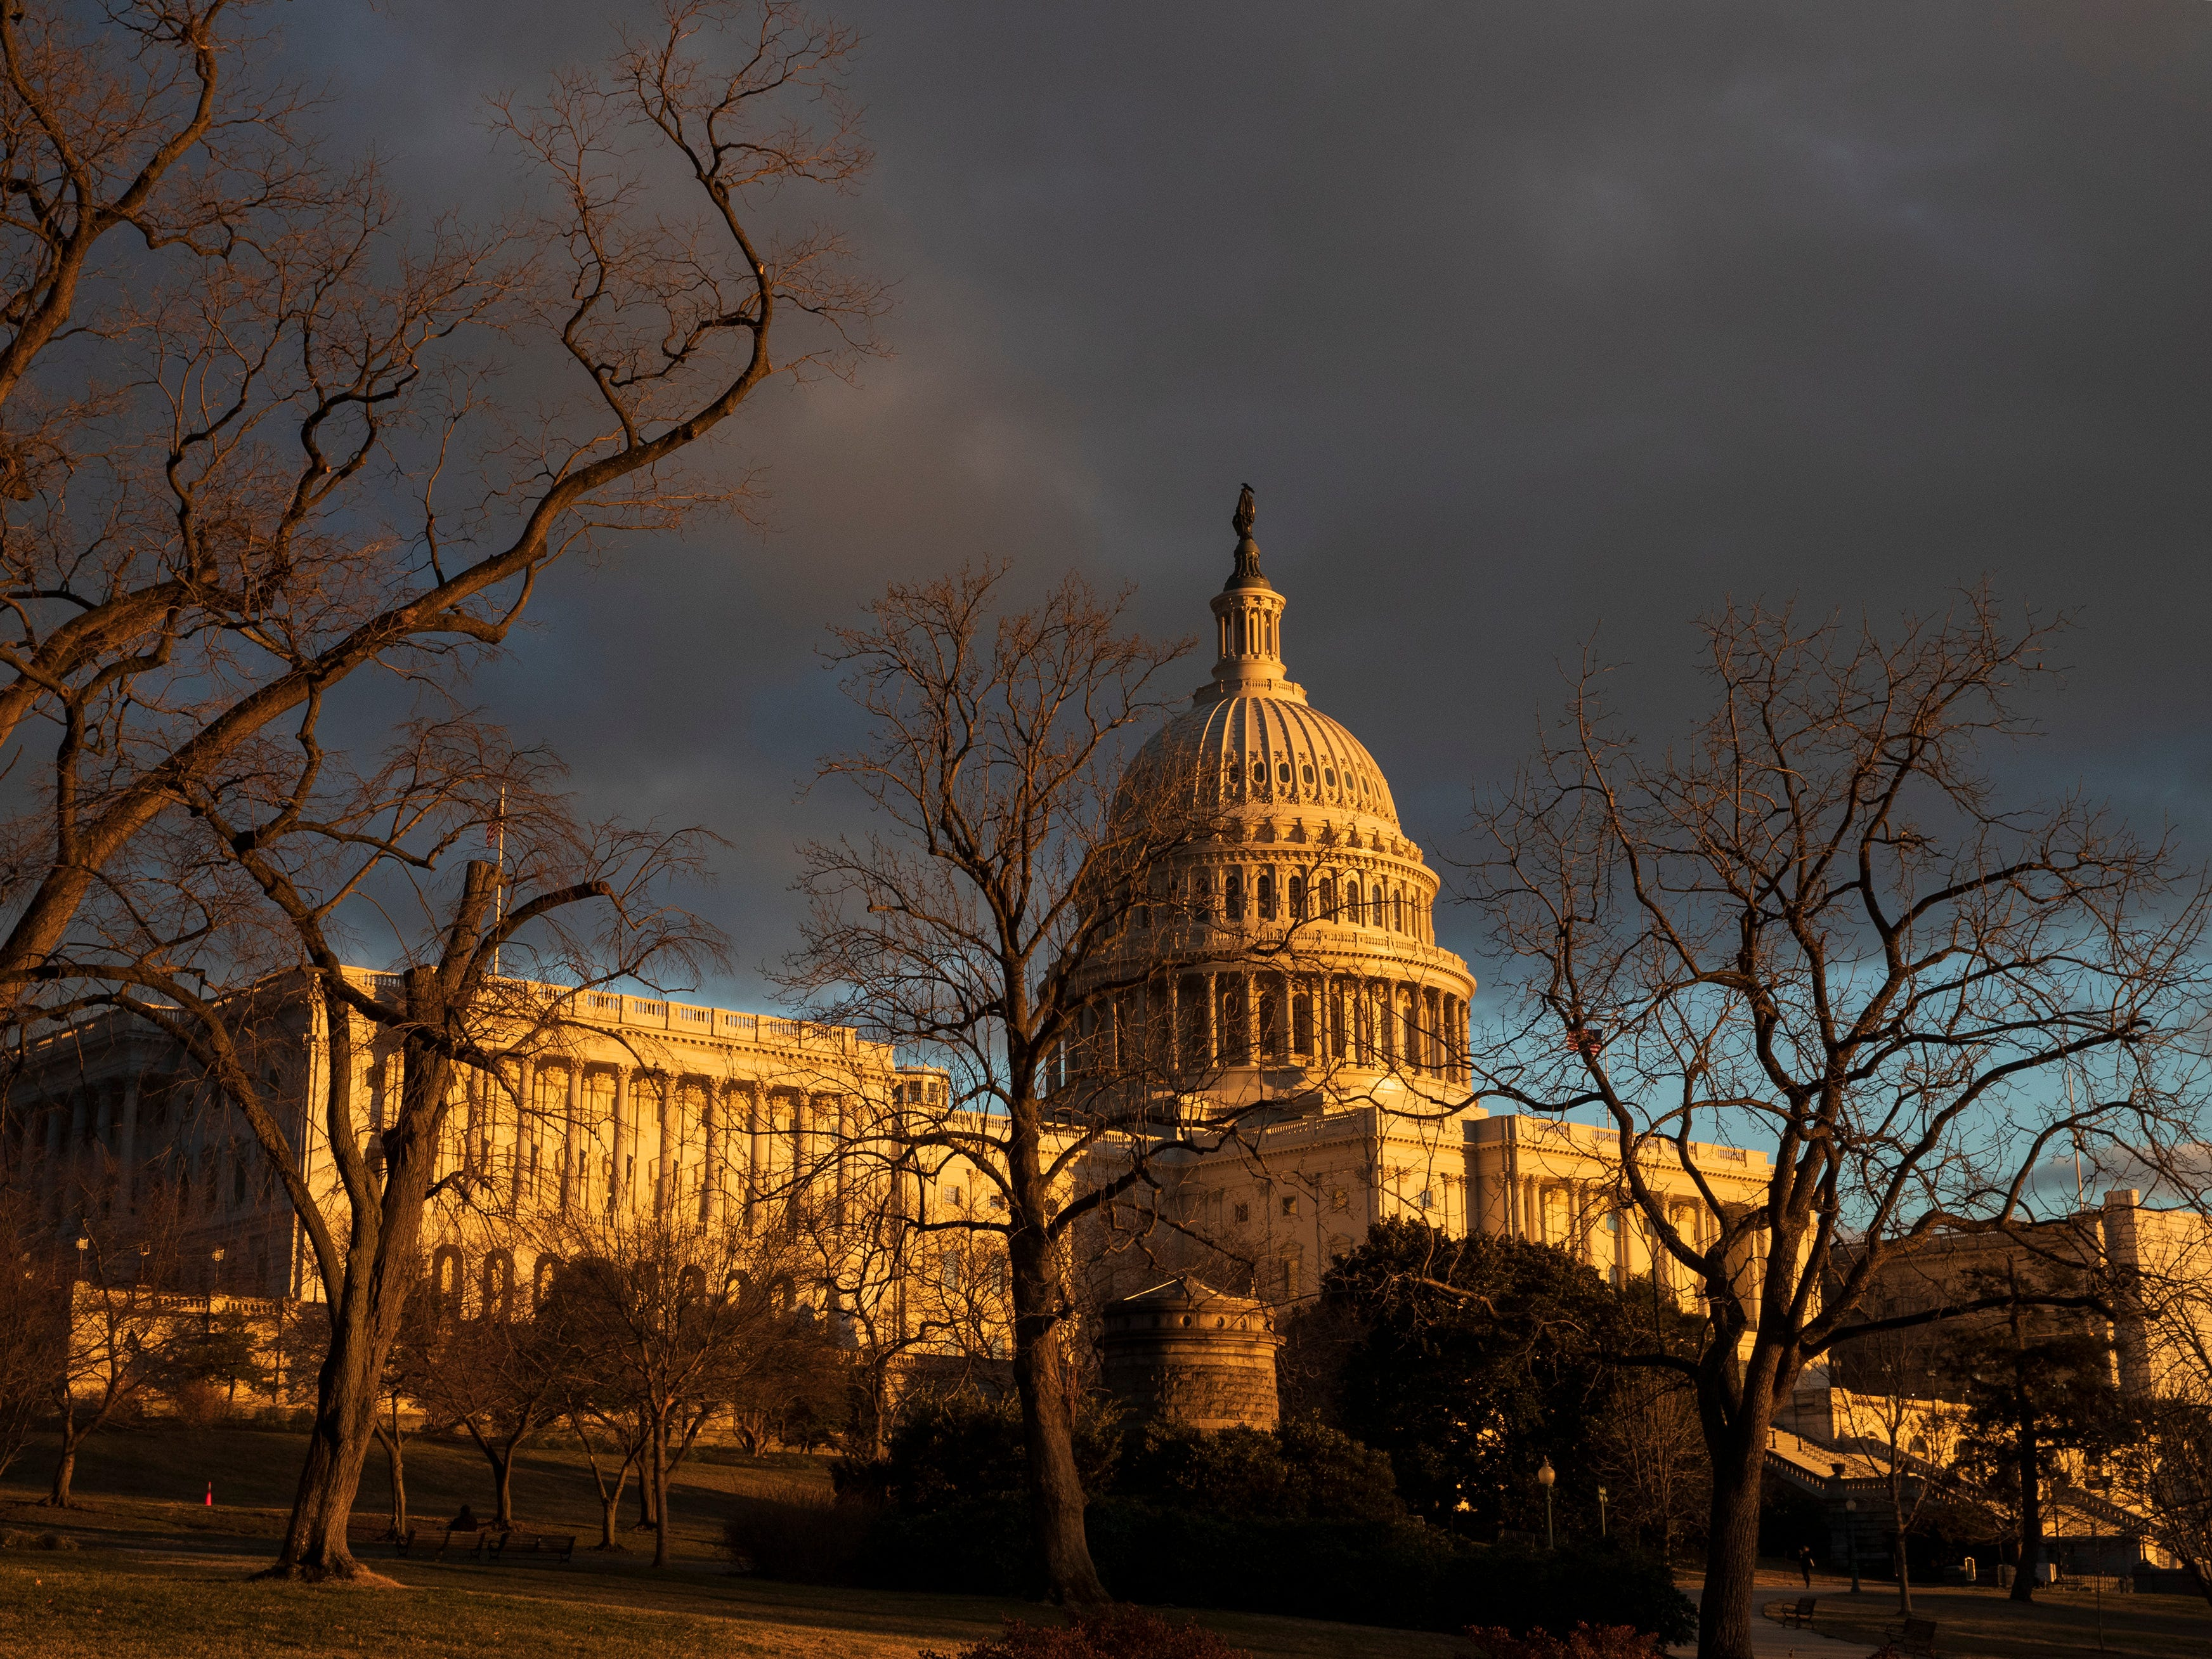 The Capitol is seen under dark skies at sunset after the Senate rejected competing Democratic and Republican proposals for ending the partial government shutdown, which is the longest in the nation's history, in Washington, Thursday, Jan. 24, 2019.